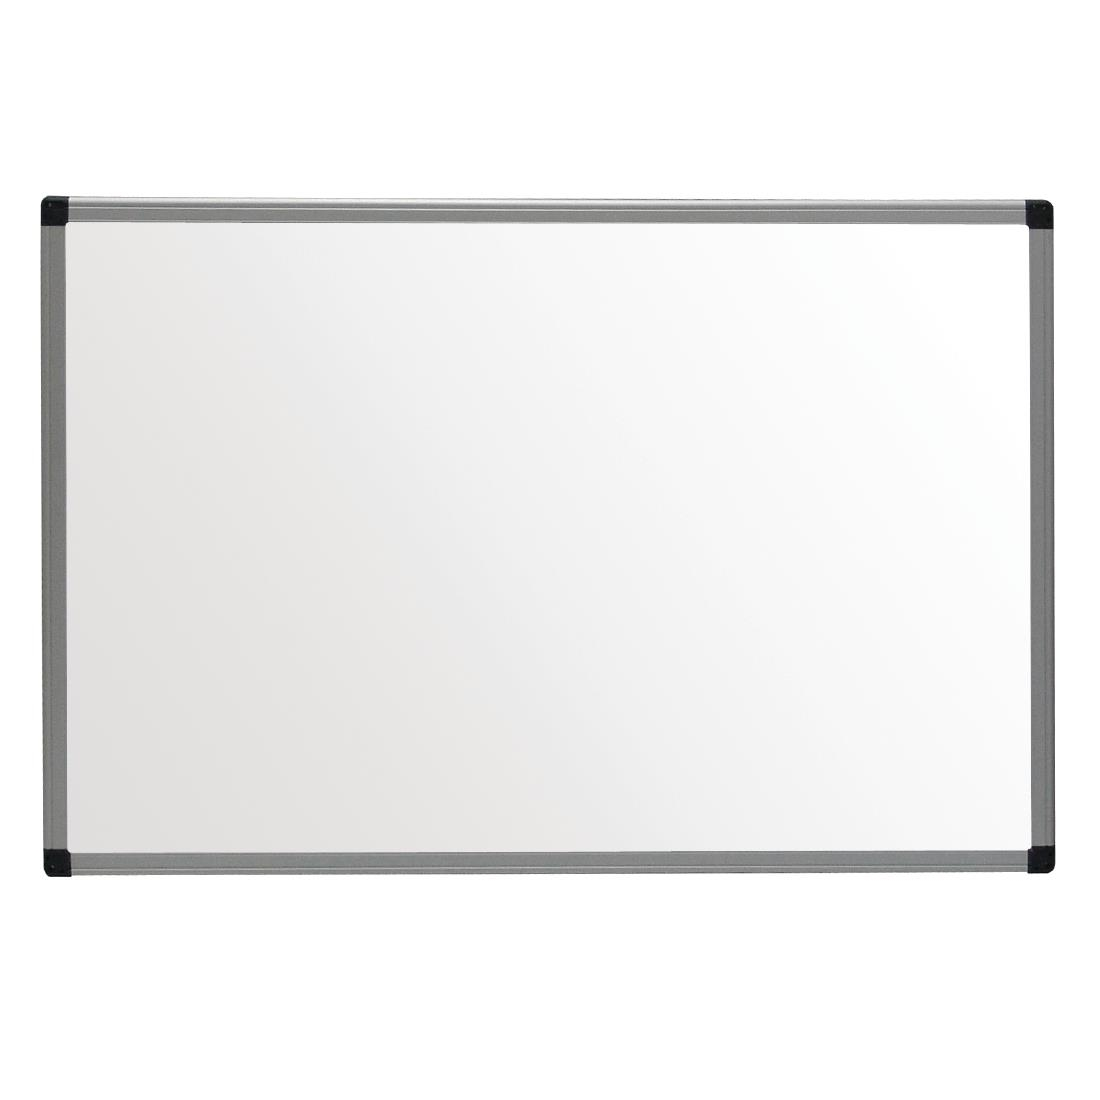 Image of Olympia White Magnetic Board